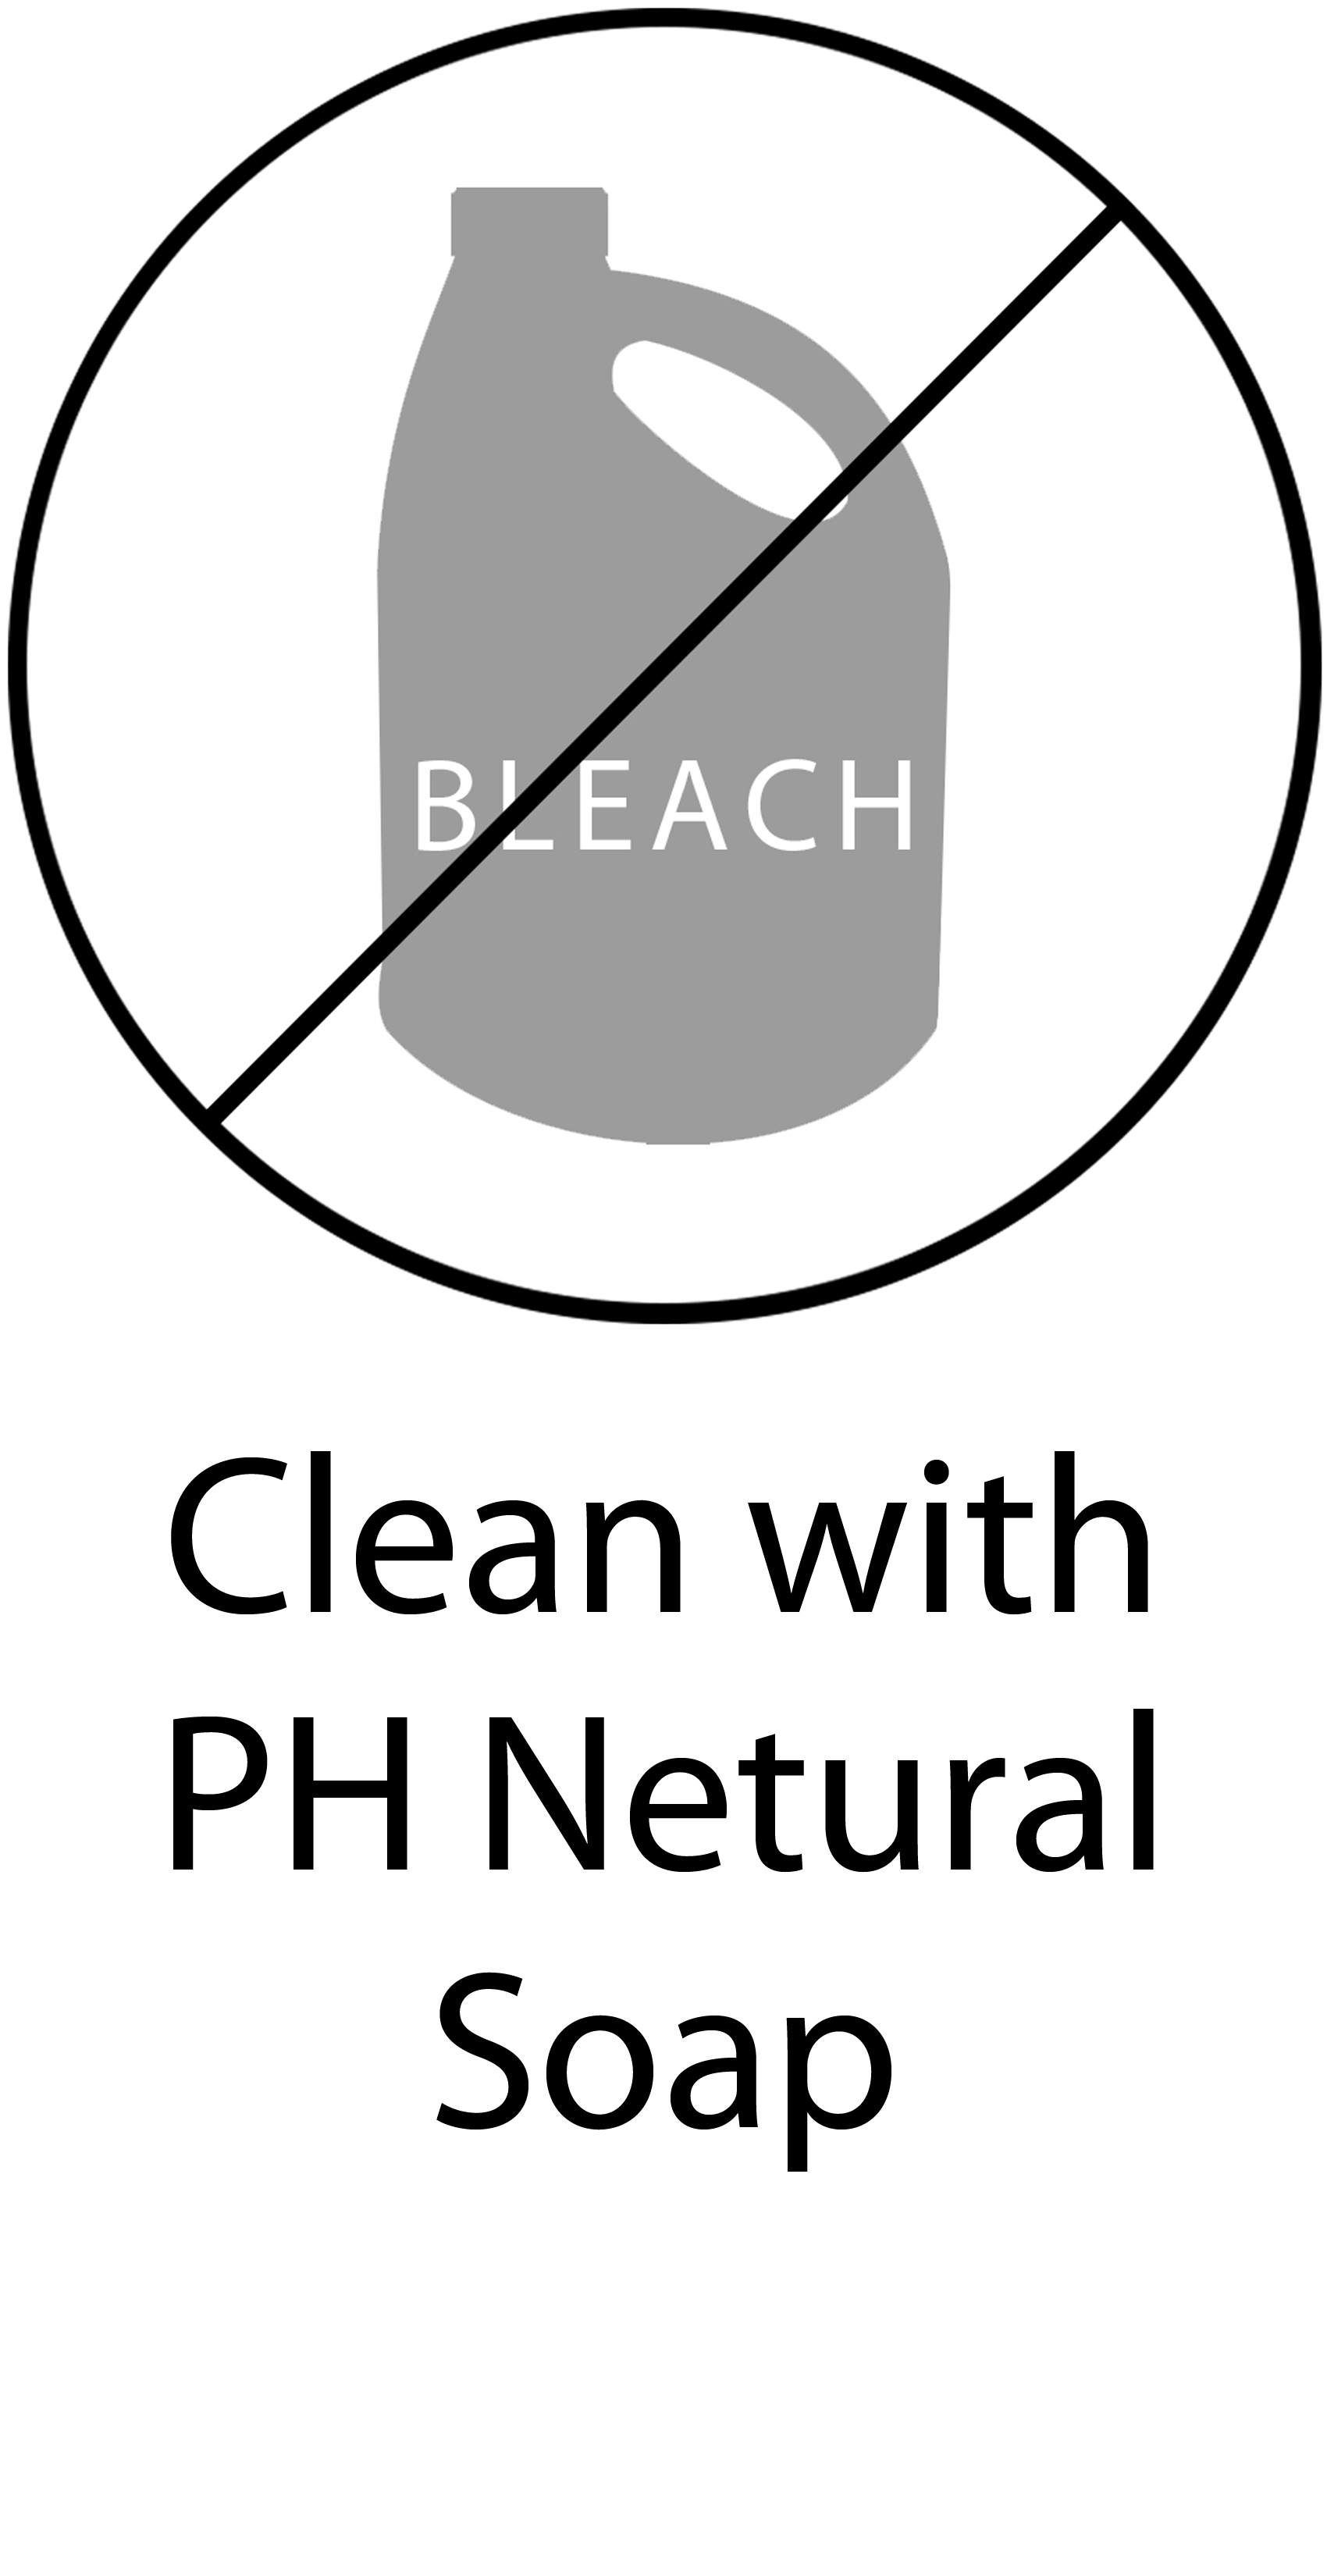 Clean with PH Neutral Soap.jpg